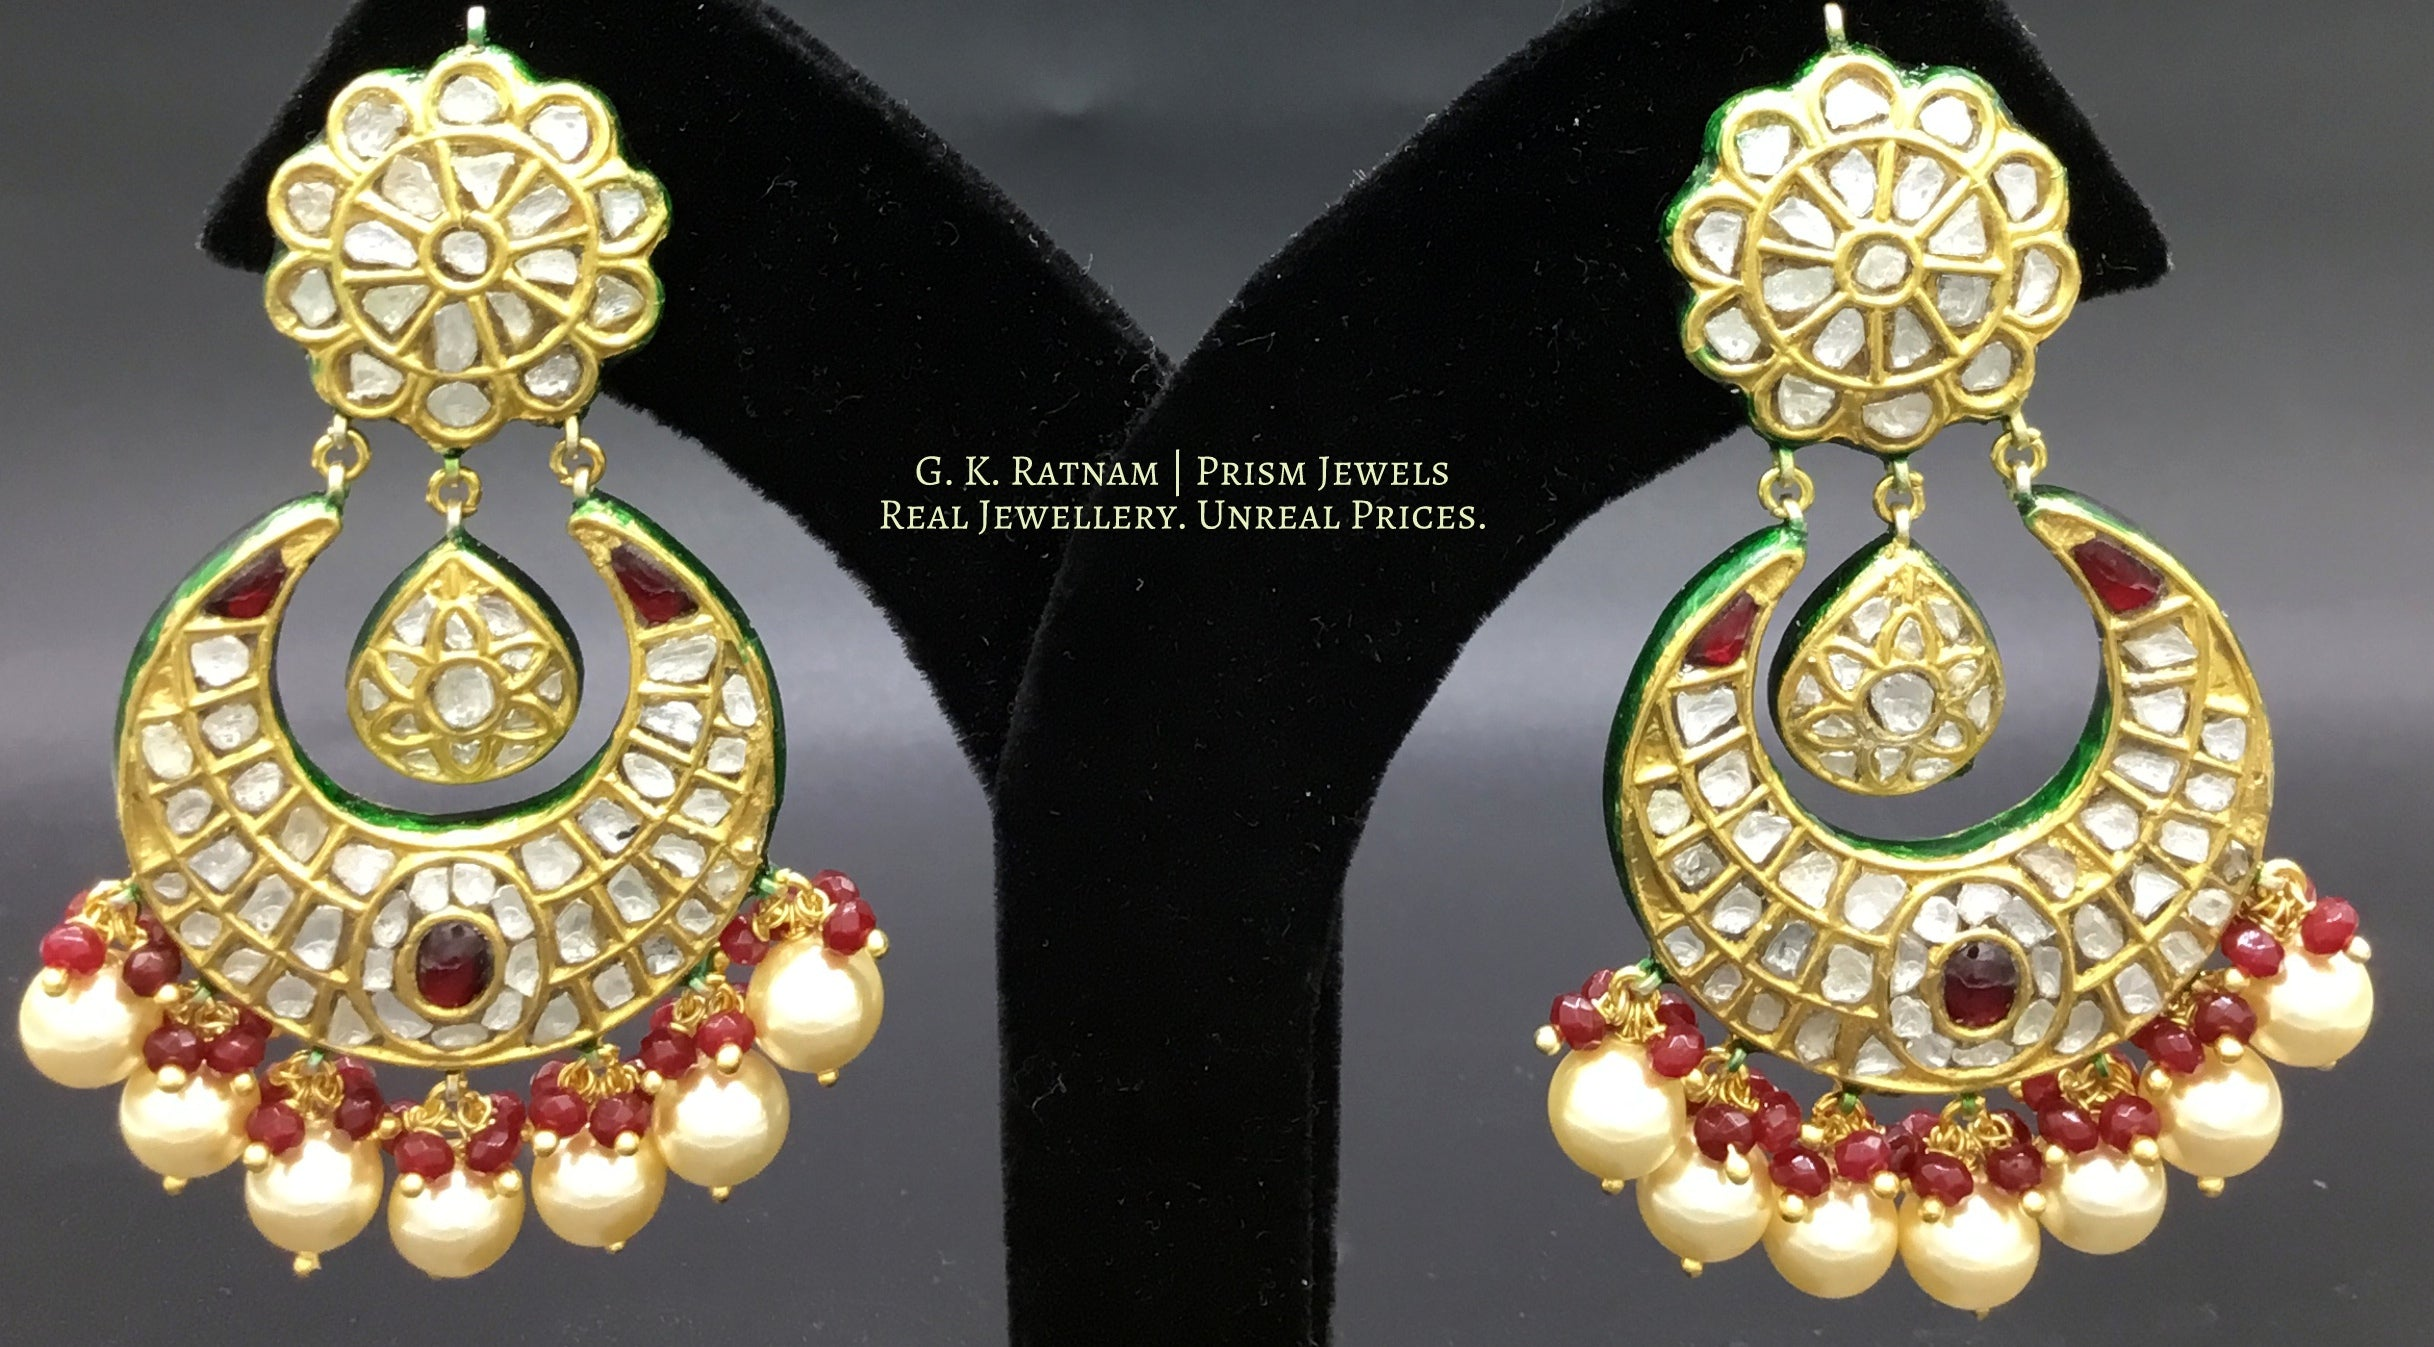 23k Gold and Diamond Polki Chand Bali Earring Pair with rubies and pearls - G. K. Ratnam